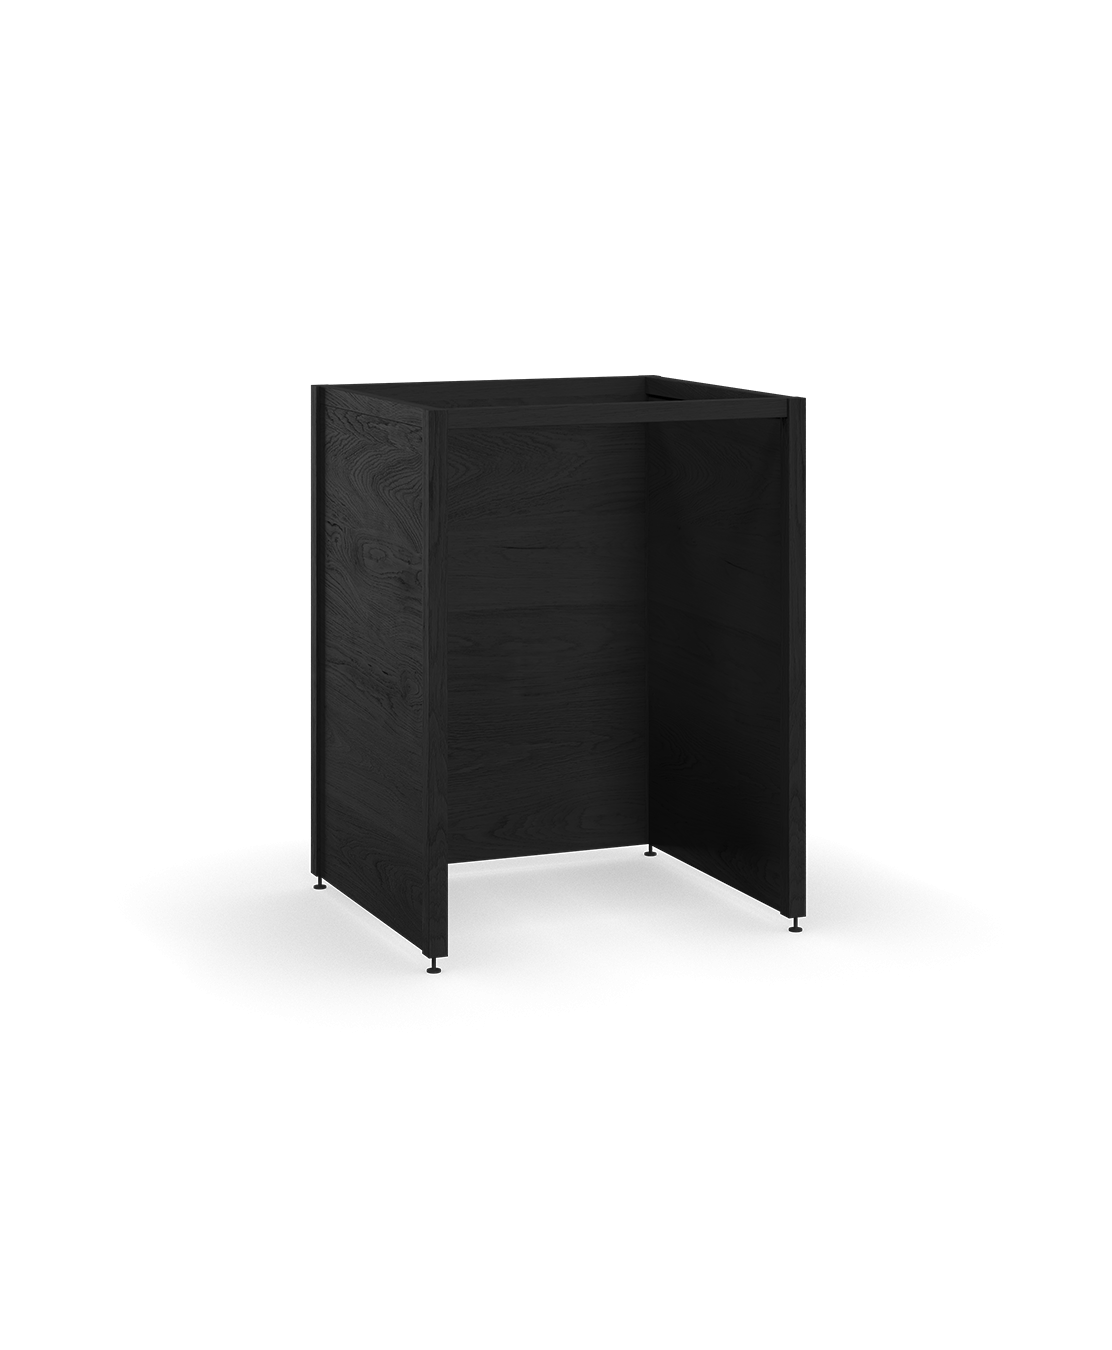 coquo radix midnight black stained oak solid wood modular built-in appliances kitchen cabinet kit 26.5 inch C1-A-24TB-0000-BK